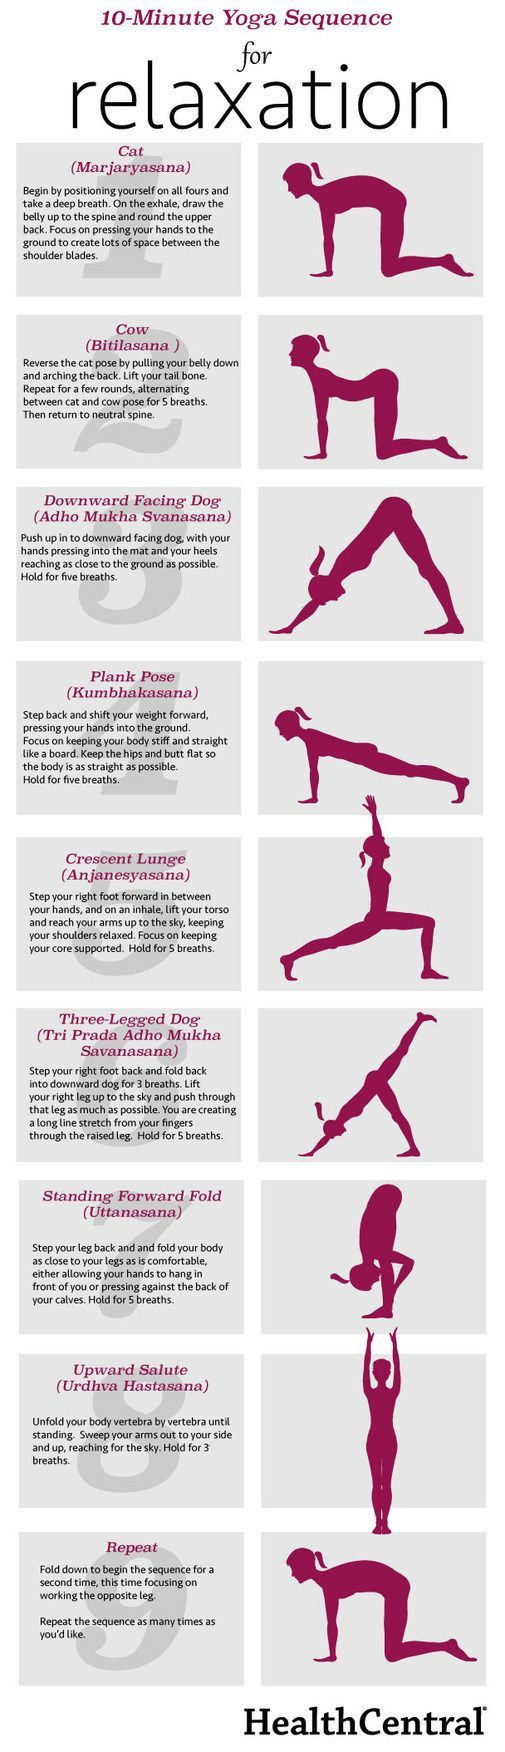 Try Doing This Yoga Routine When Life Has You All Worked Up Rh Com Workout Routines To Build Muscle For Girls